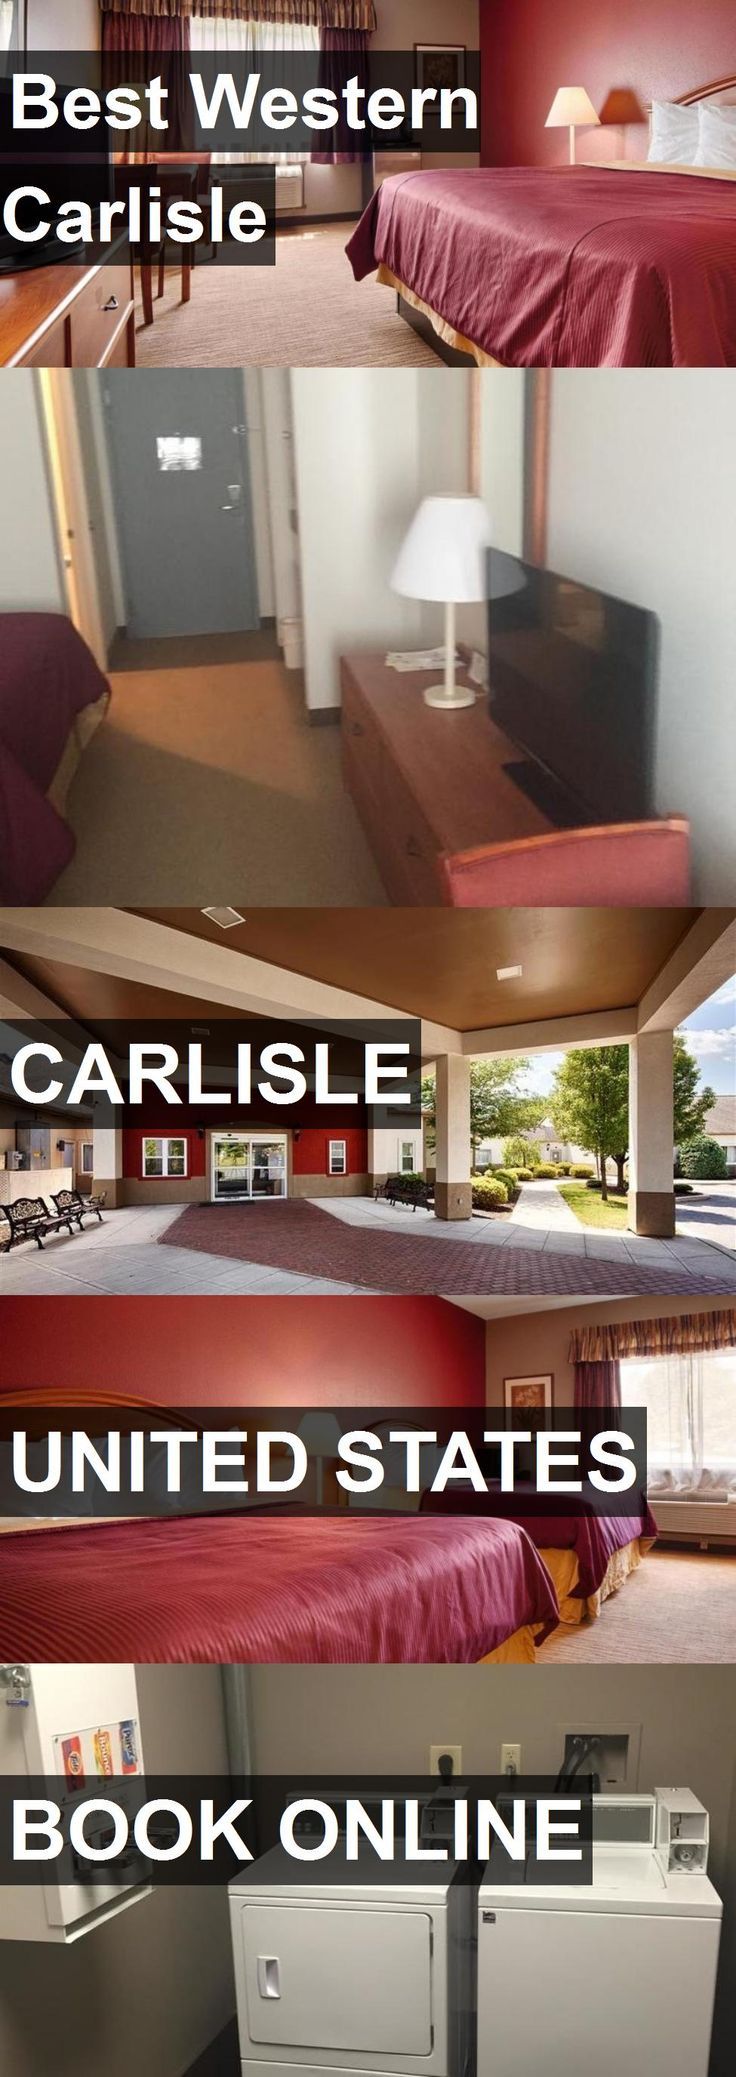 Hotel Best Western Carlisle in Carlisle, United States. For more information, photos, reviews and best prices please follow the link. #UnitedStates #Carlisle #hotel #travel #vacation